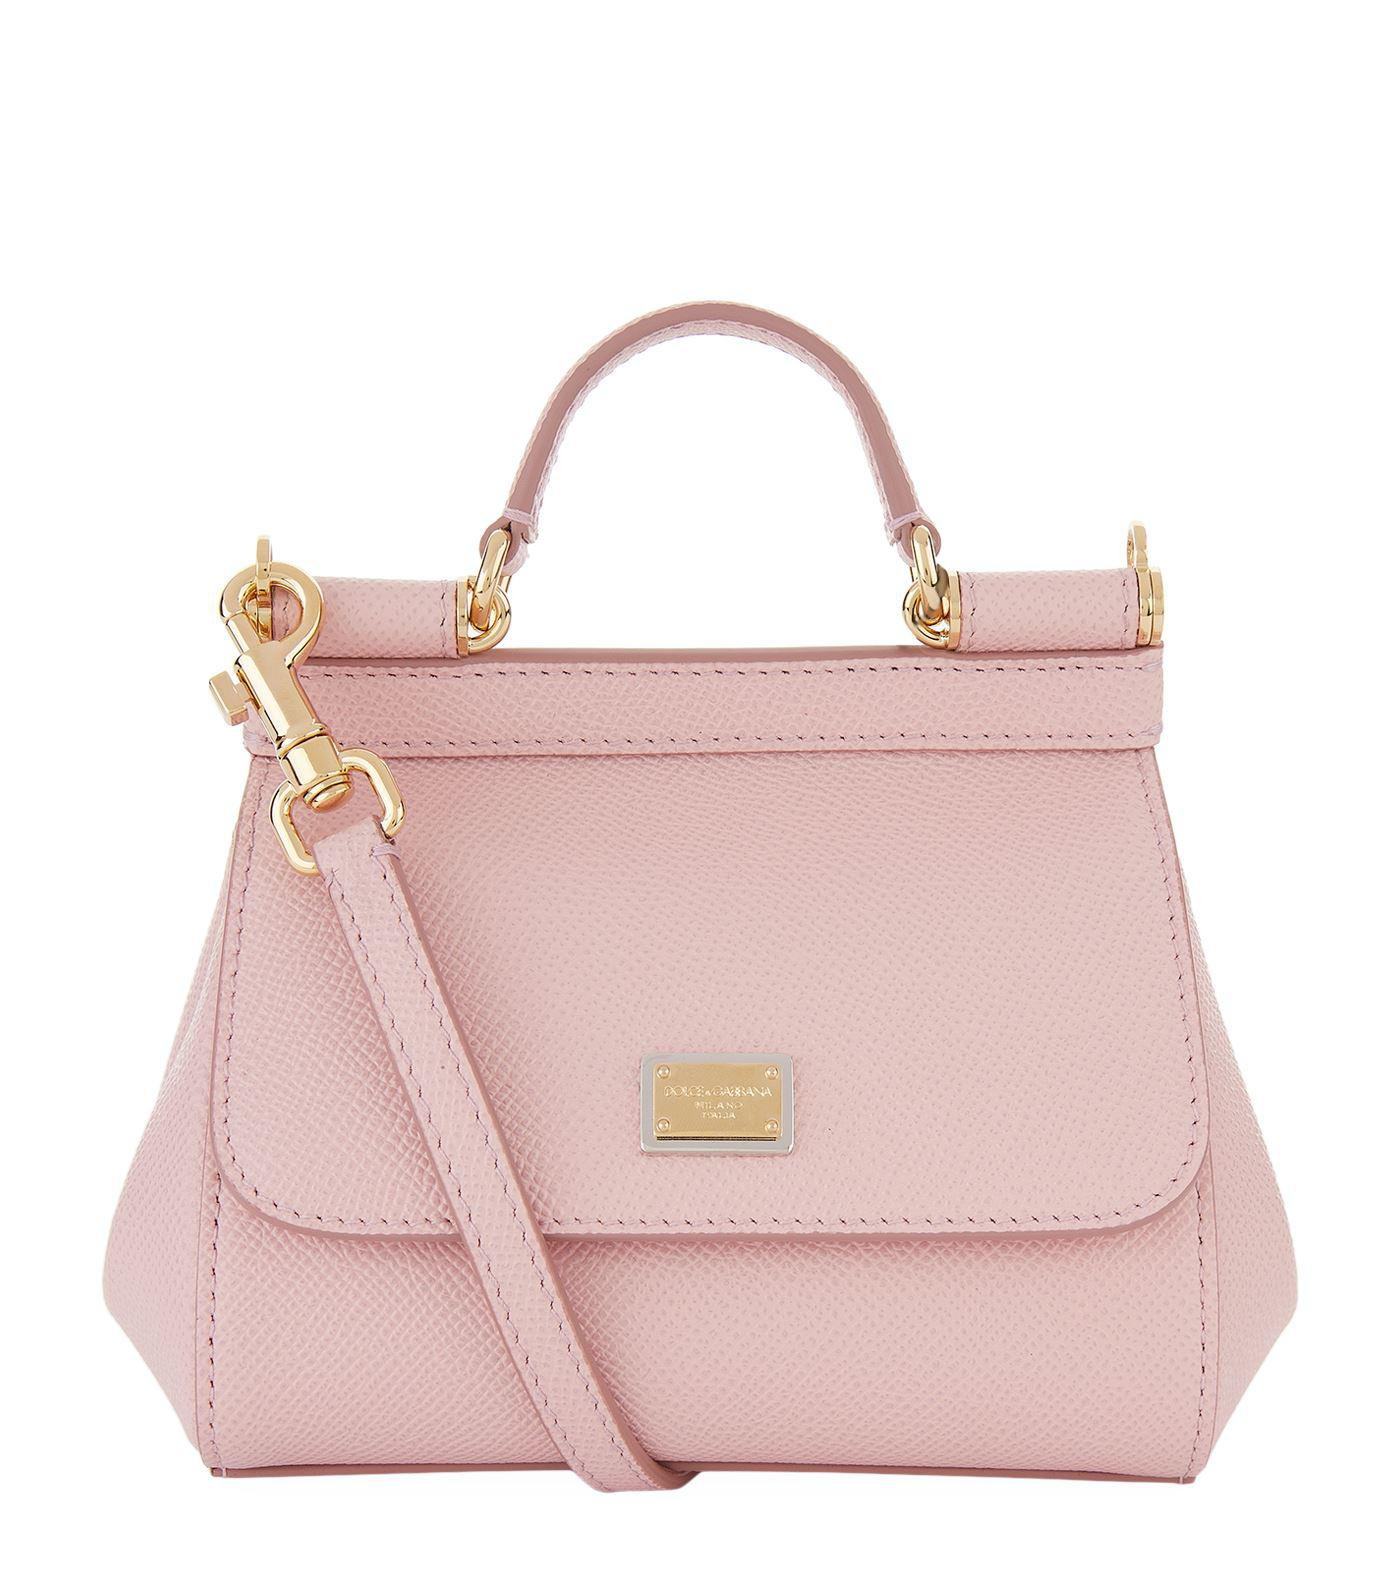 6e40fbbb1c Dolce   Gabbana Micro Sicily Top Handle Bag in Pink - Lyst